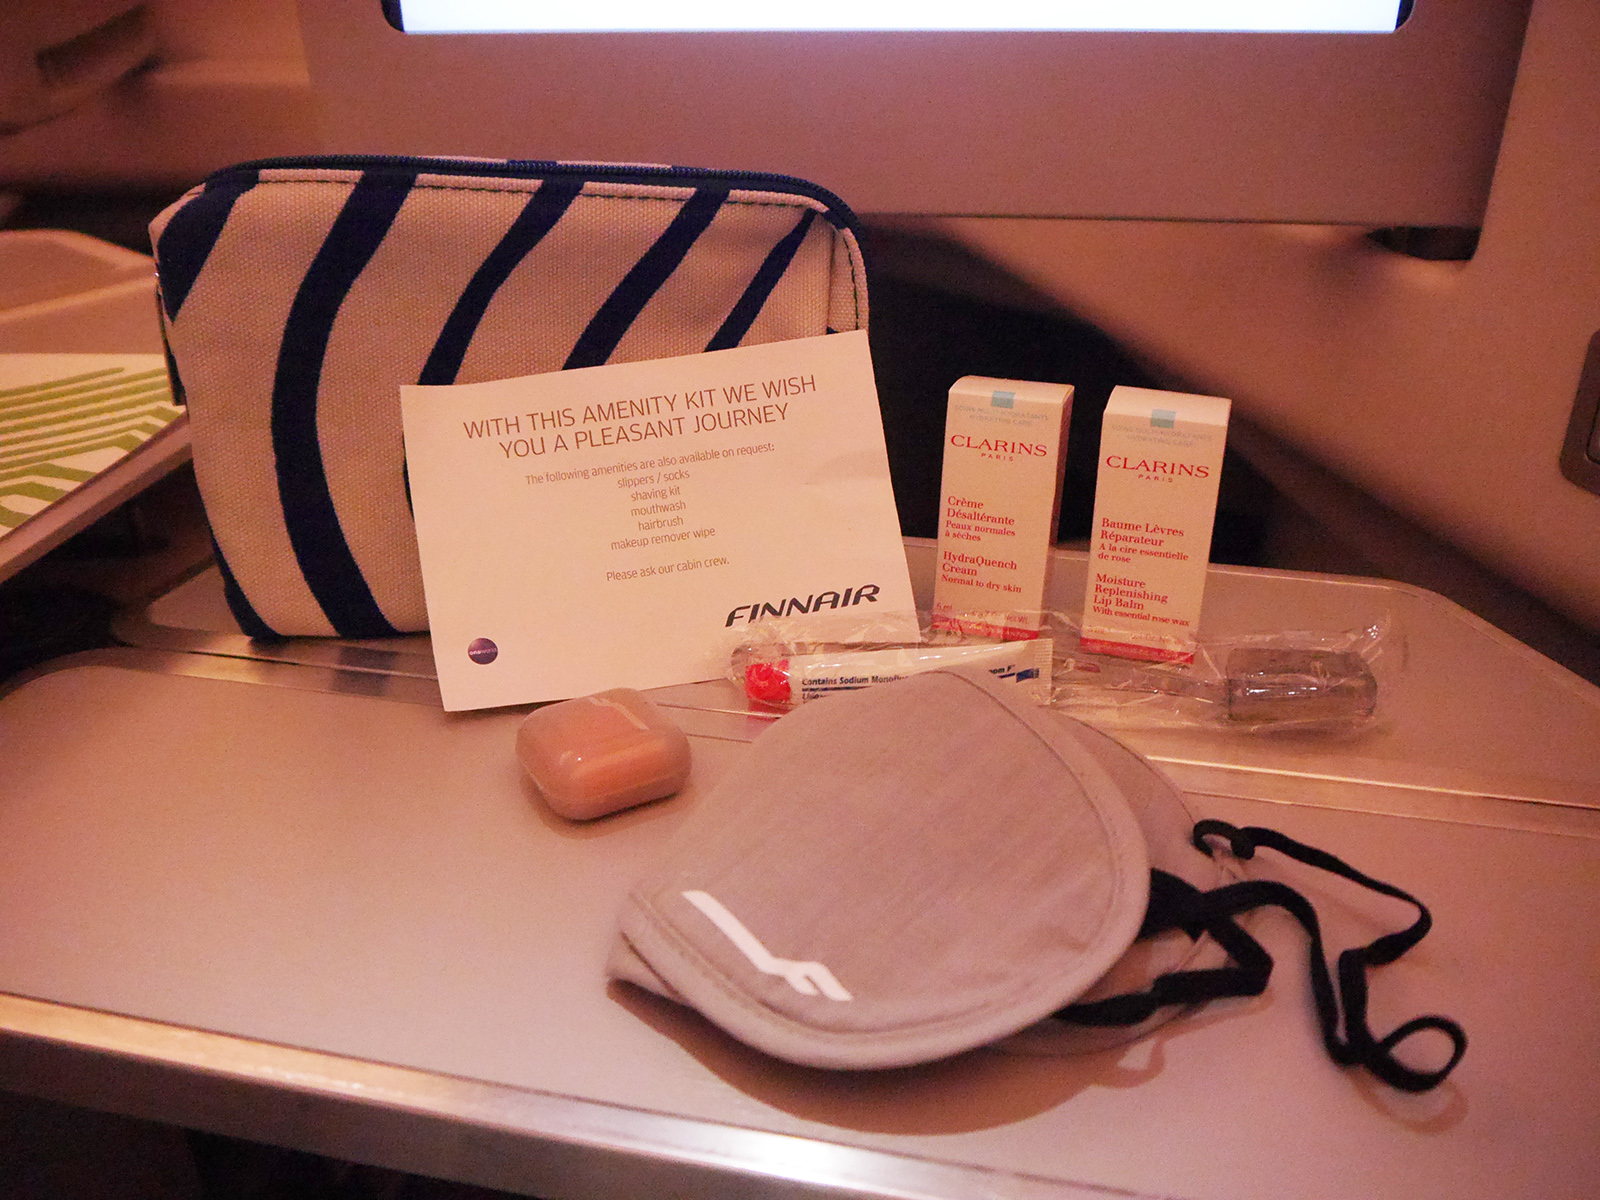 Finnair_Amenity_Kit